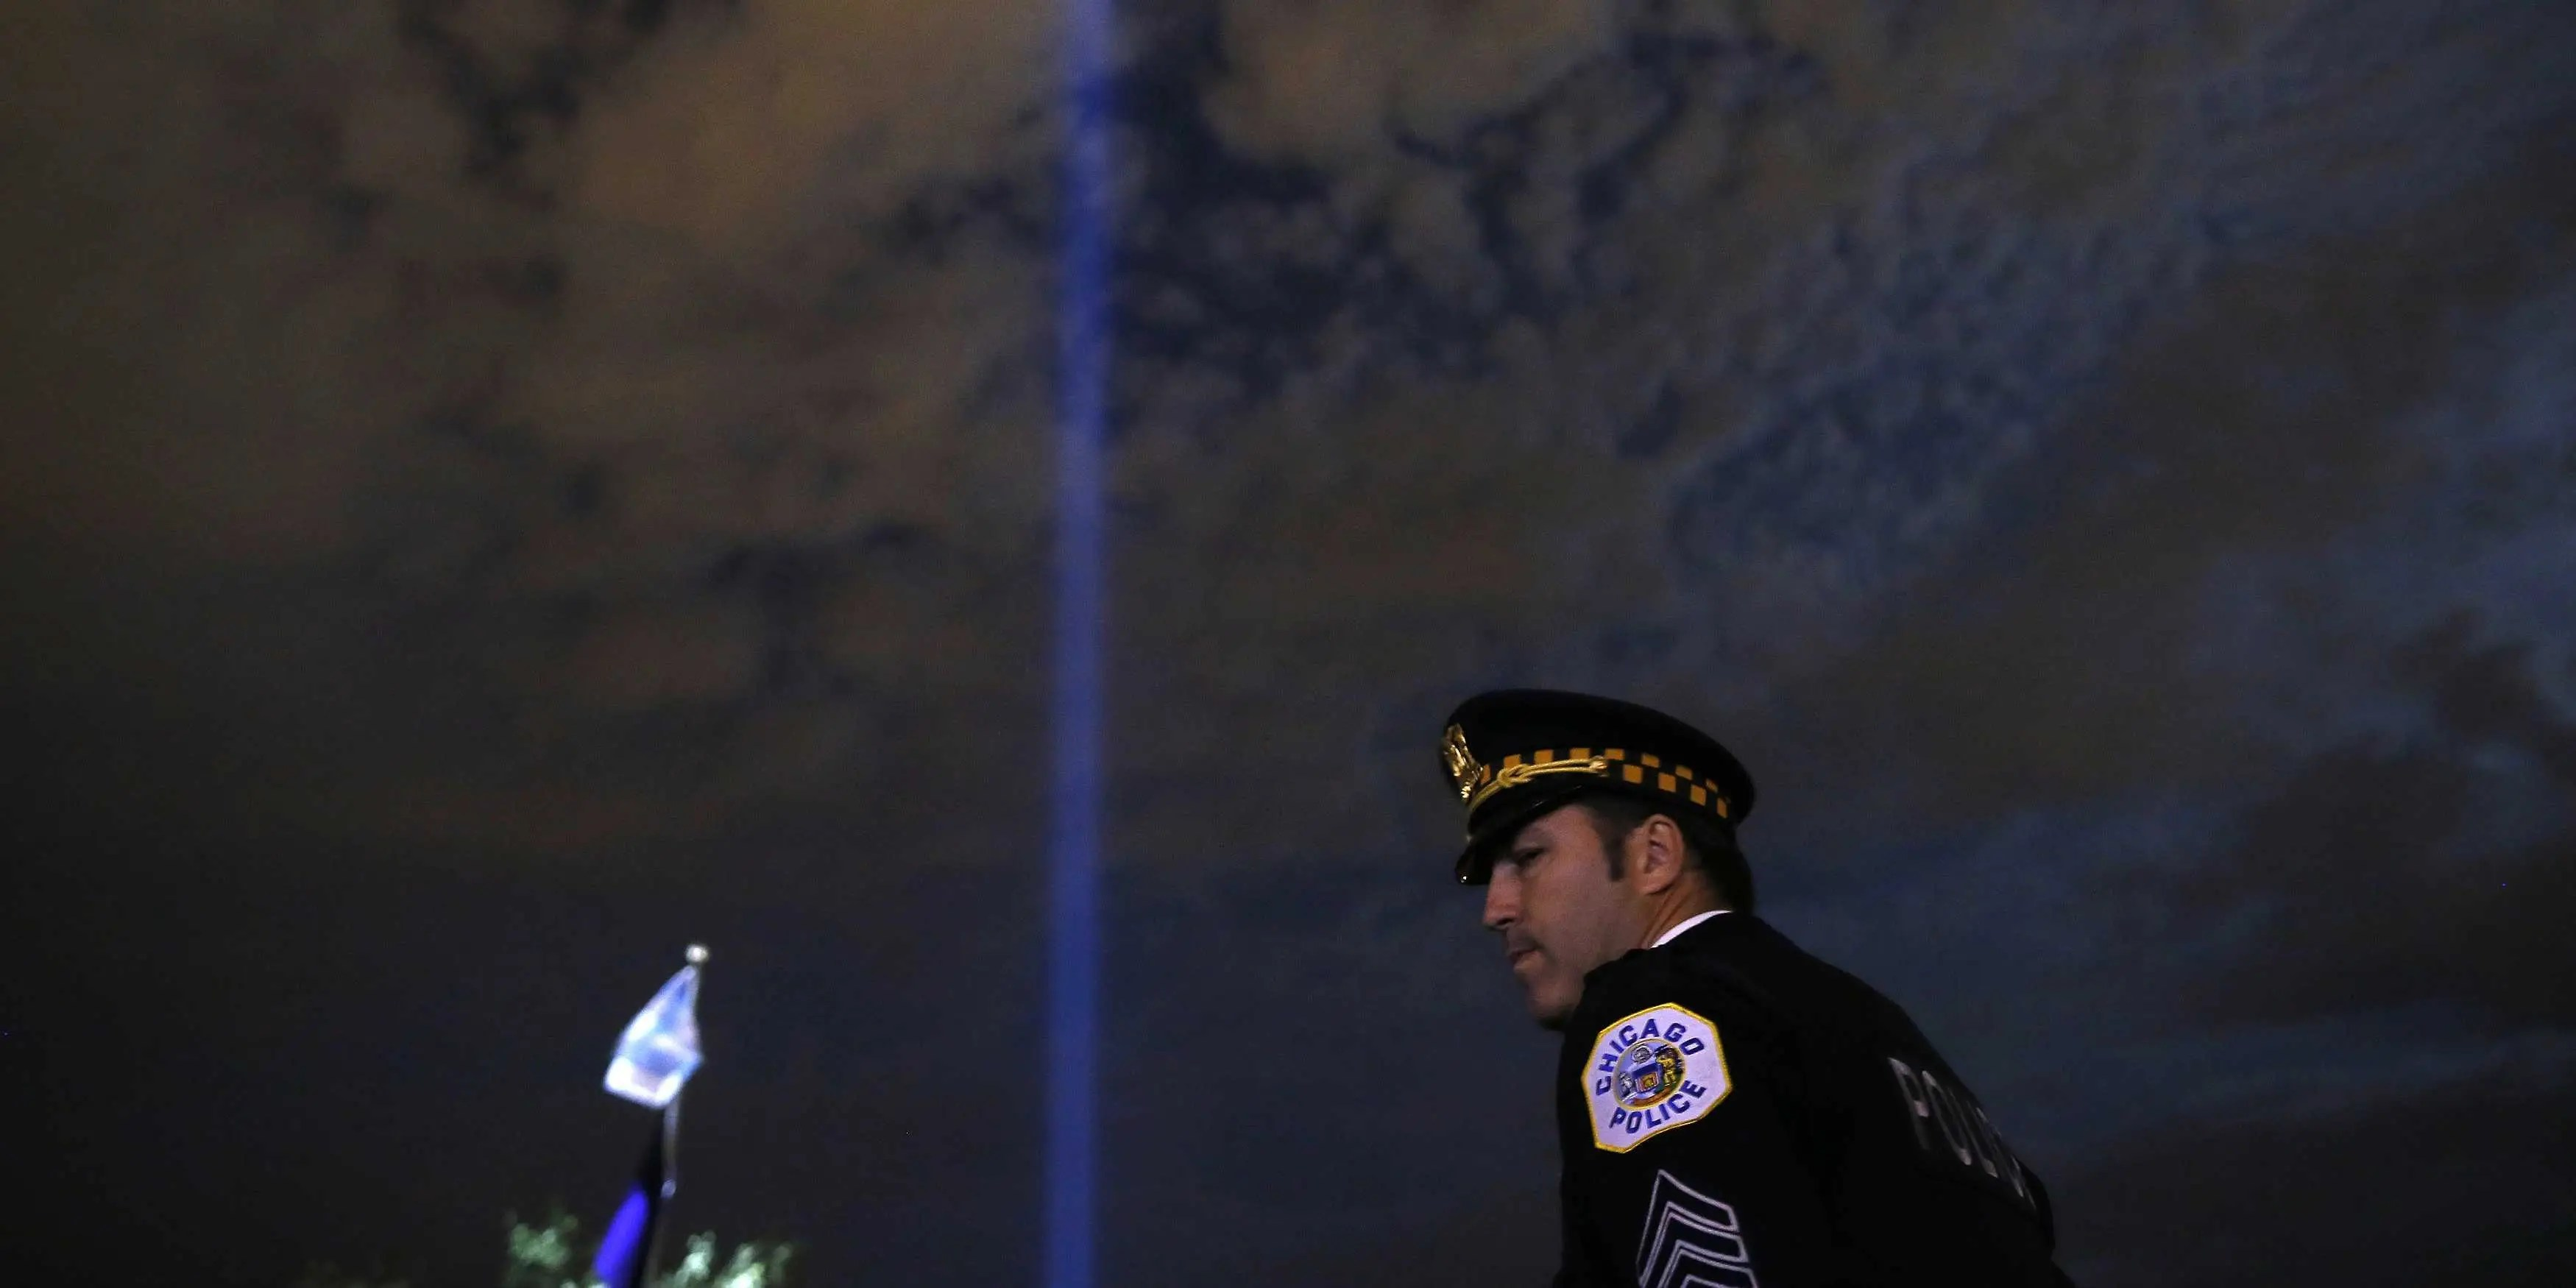 A police officer stands beneath a beam of light projected into the sky at the 10th Annual Chicago Police Memorial Foundation's Candlelight Vigil in Chicago, Illinois, September 17, 2013.